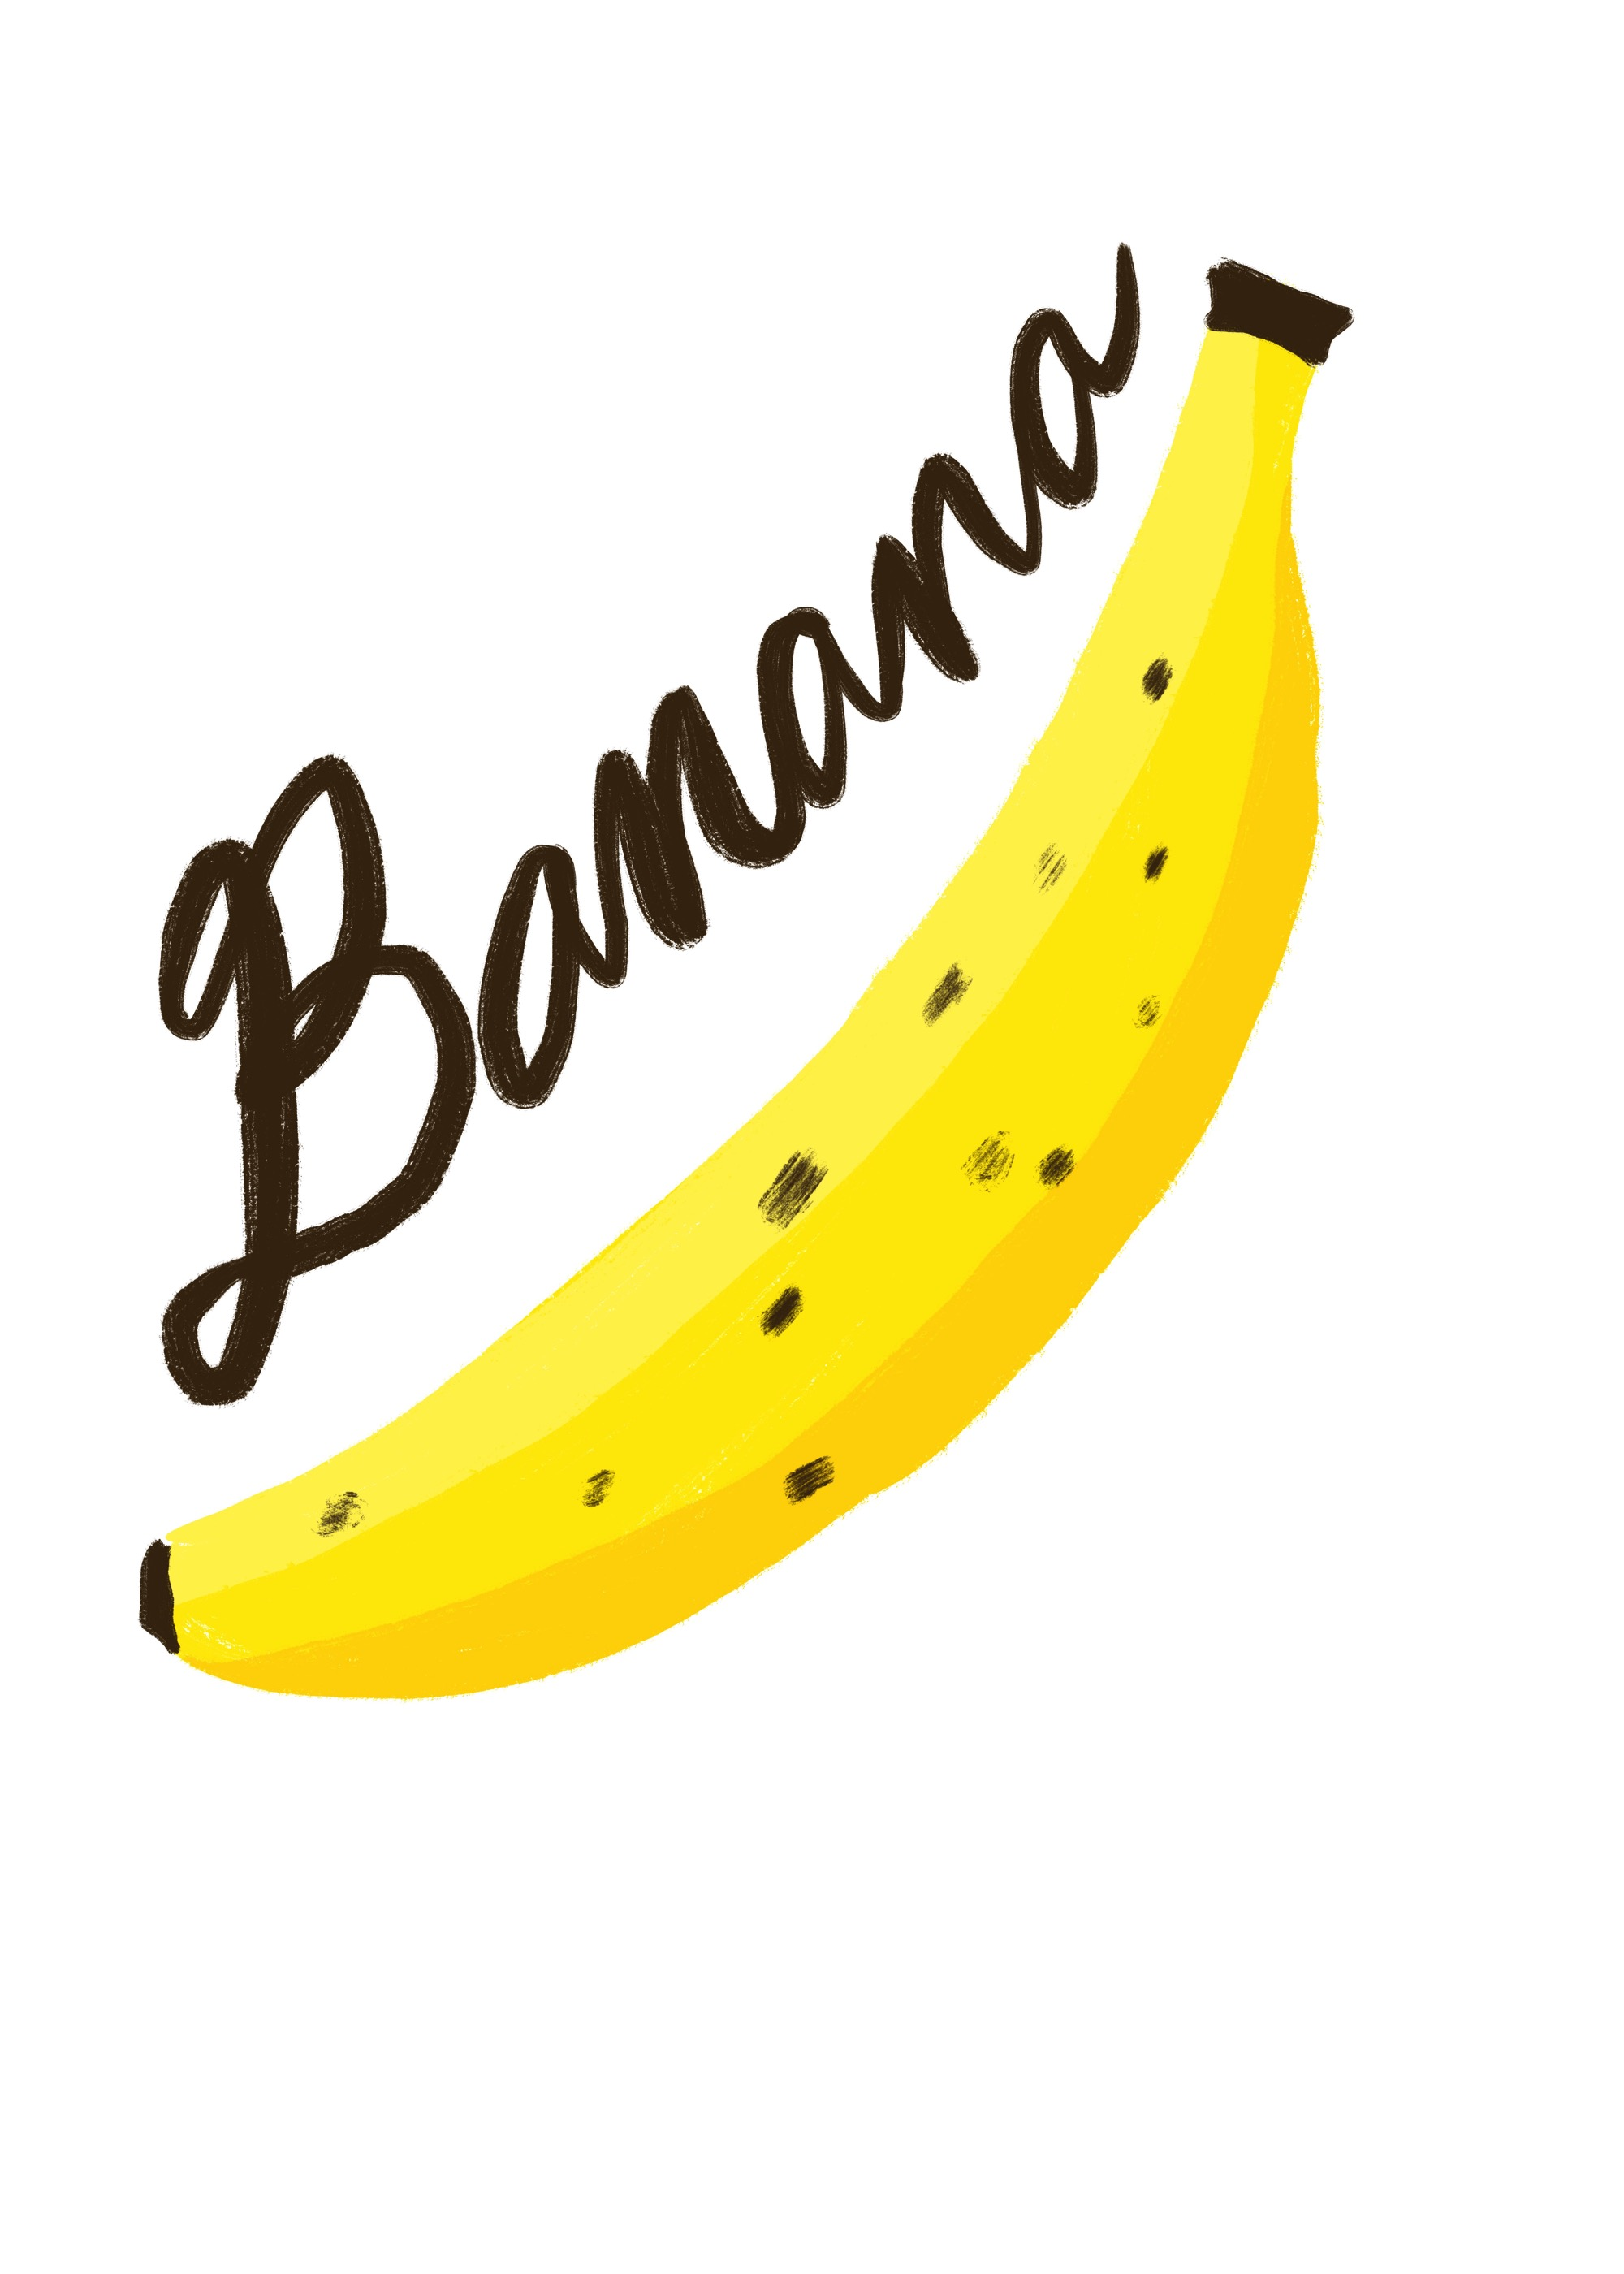 Oh another banana